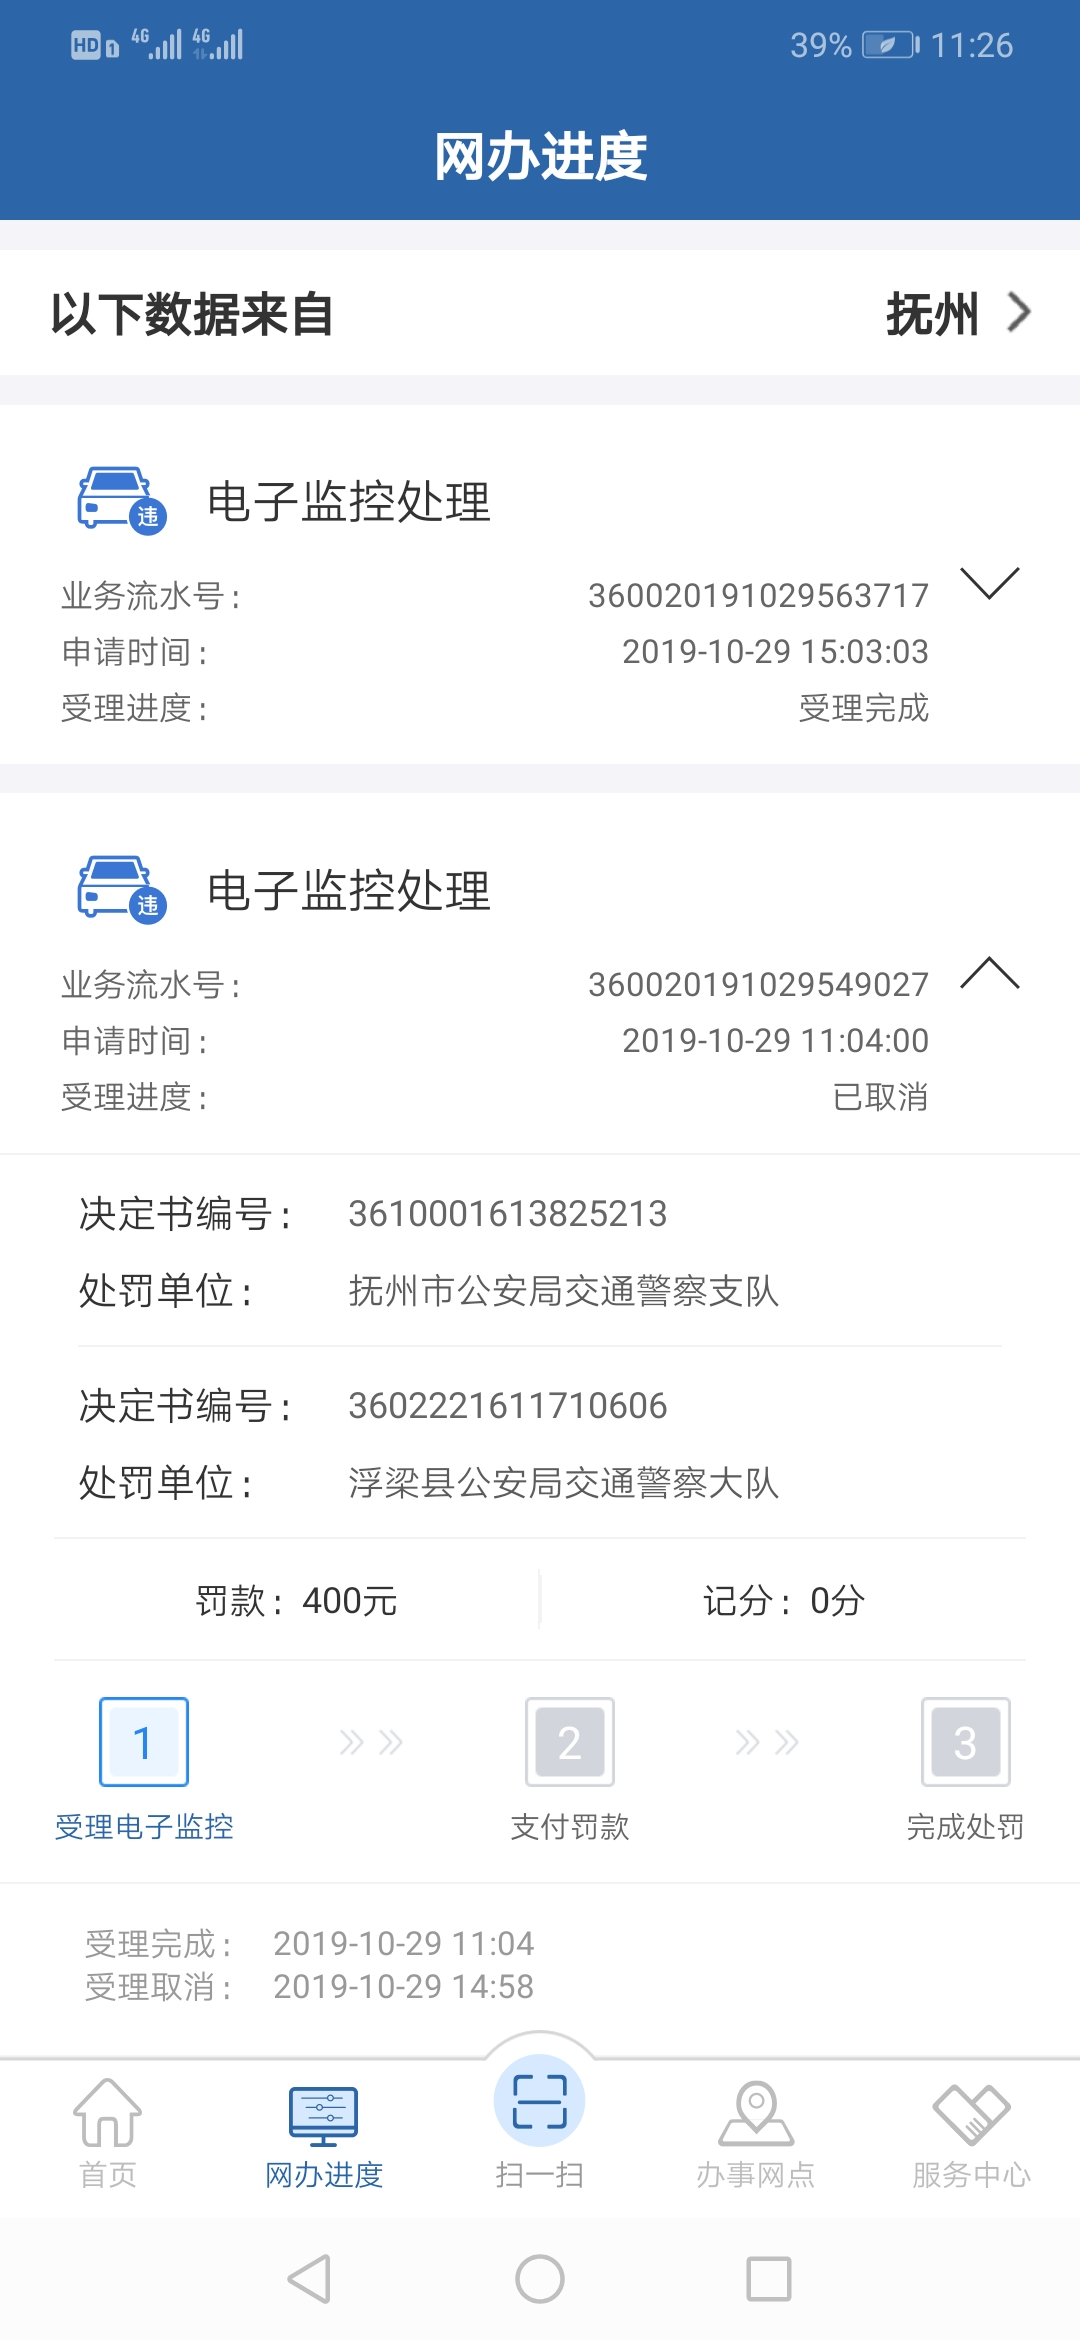 Screenshot_20191030_112645_com.tmri.app.main.jpg